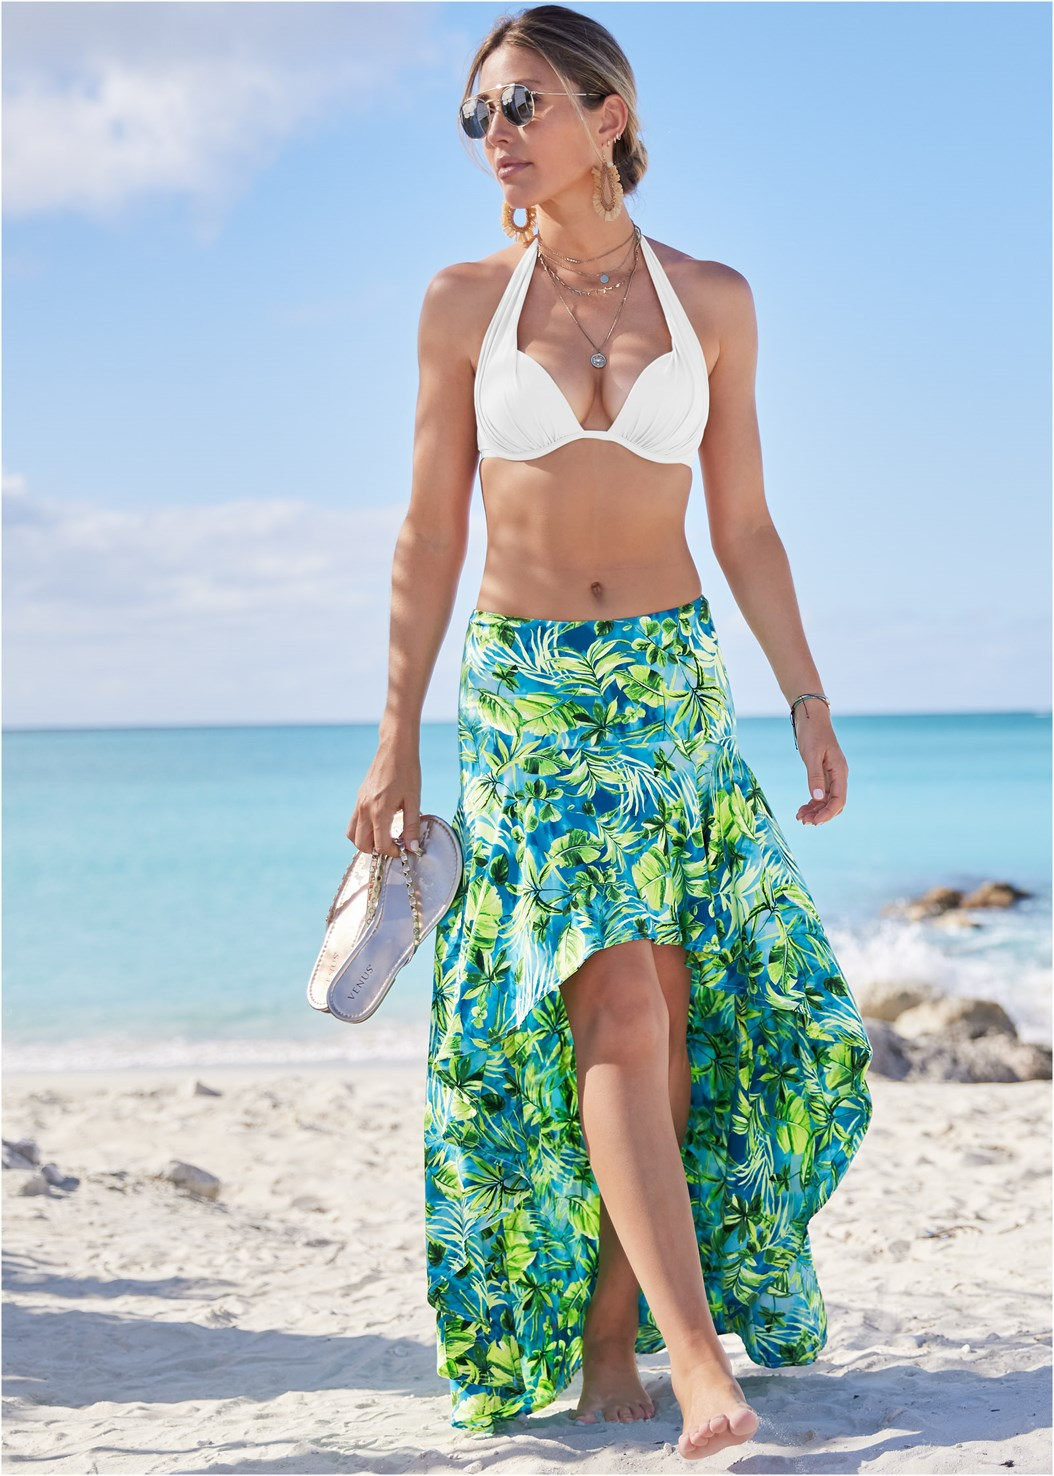 Palm Print High Low Skirt,Marilyn Underwire Push Up Halter Top,Scoop Front Classic Bikini Bottom ,Multi Strap Ankle Wrap Heel,Studded Flip Flops,Beaded Raffia Hoop Earrings,Square Neck Tank Top,Shell Pendant Necklace,Sequin Straw Crossbody Bag,Ankle Strap Cork Heel,Shell Fringe Earrings